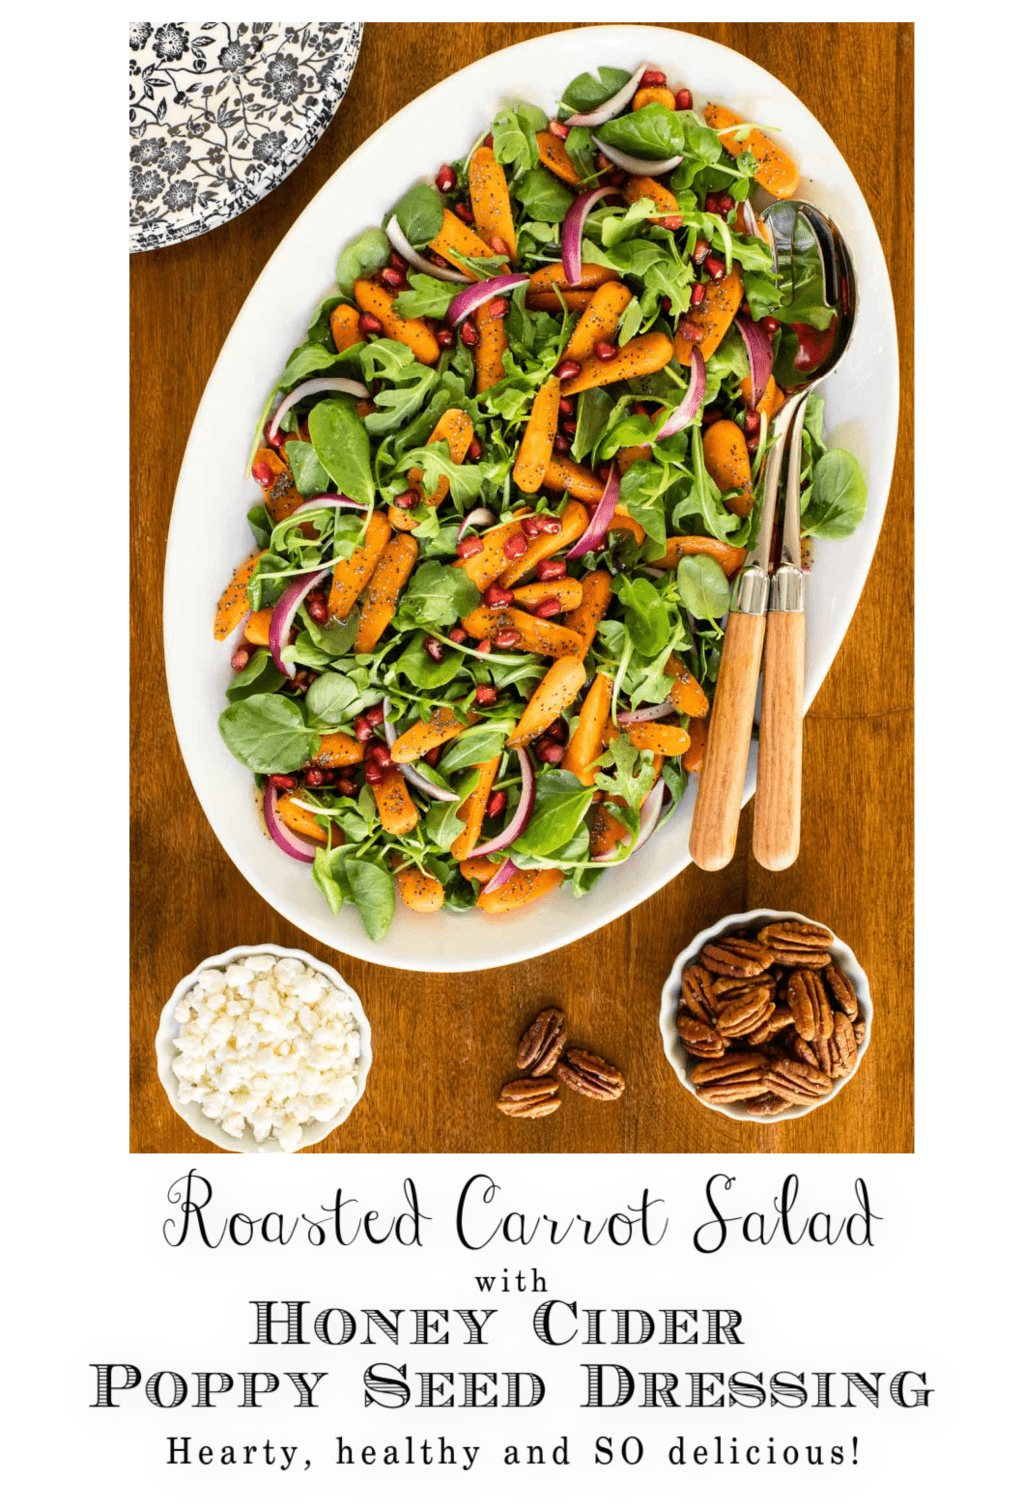 Roasted Carrot Salad with Honey Cider Poppy Seed Dressing